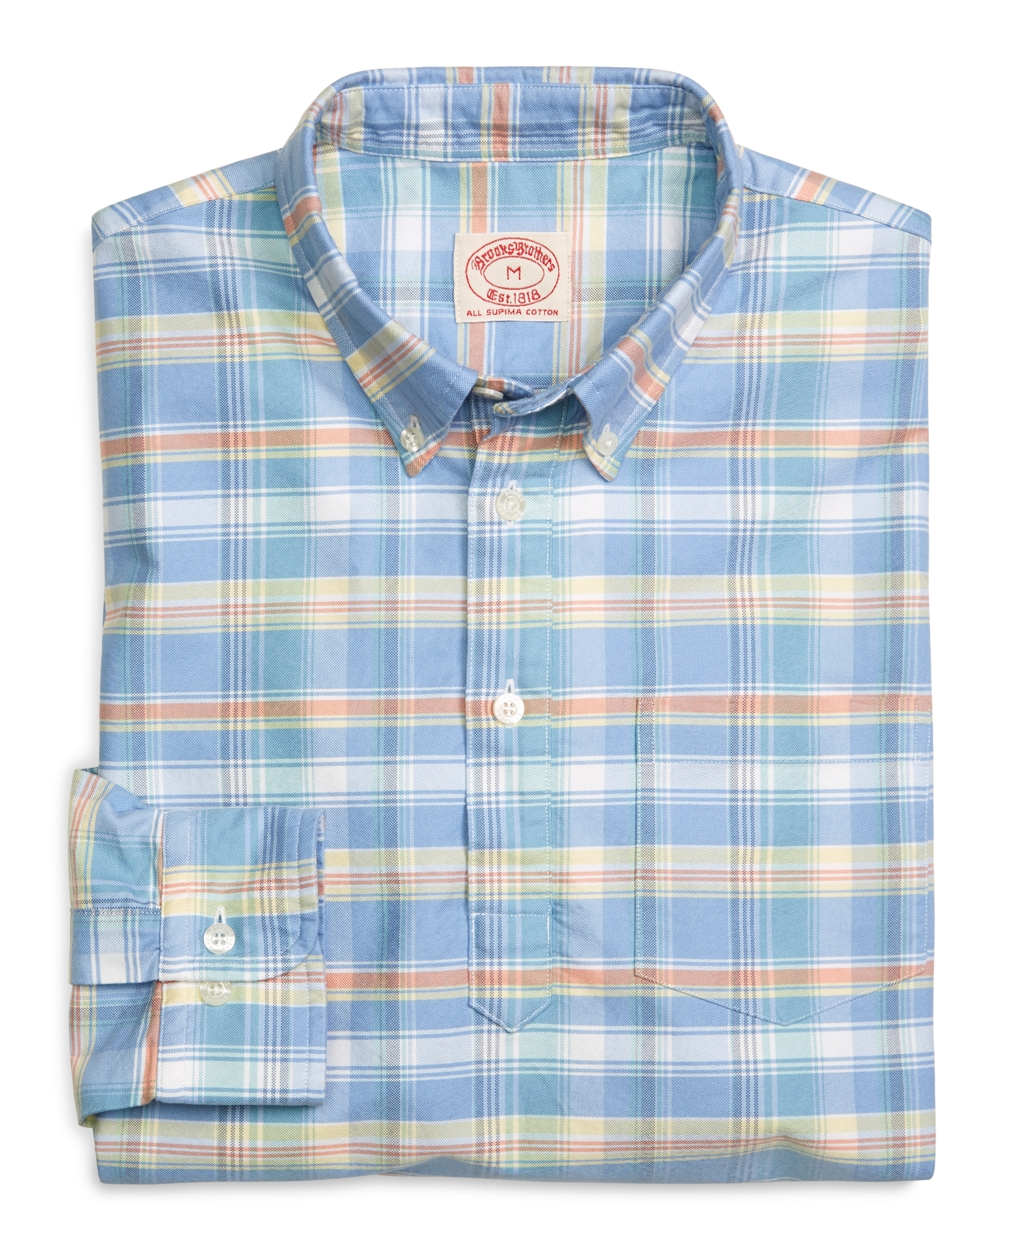 Lyst brooks brothers multiplaid oxford sport shirt in for T shirt printing oxford